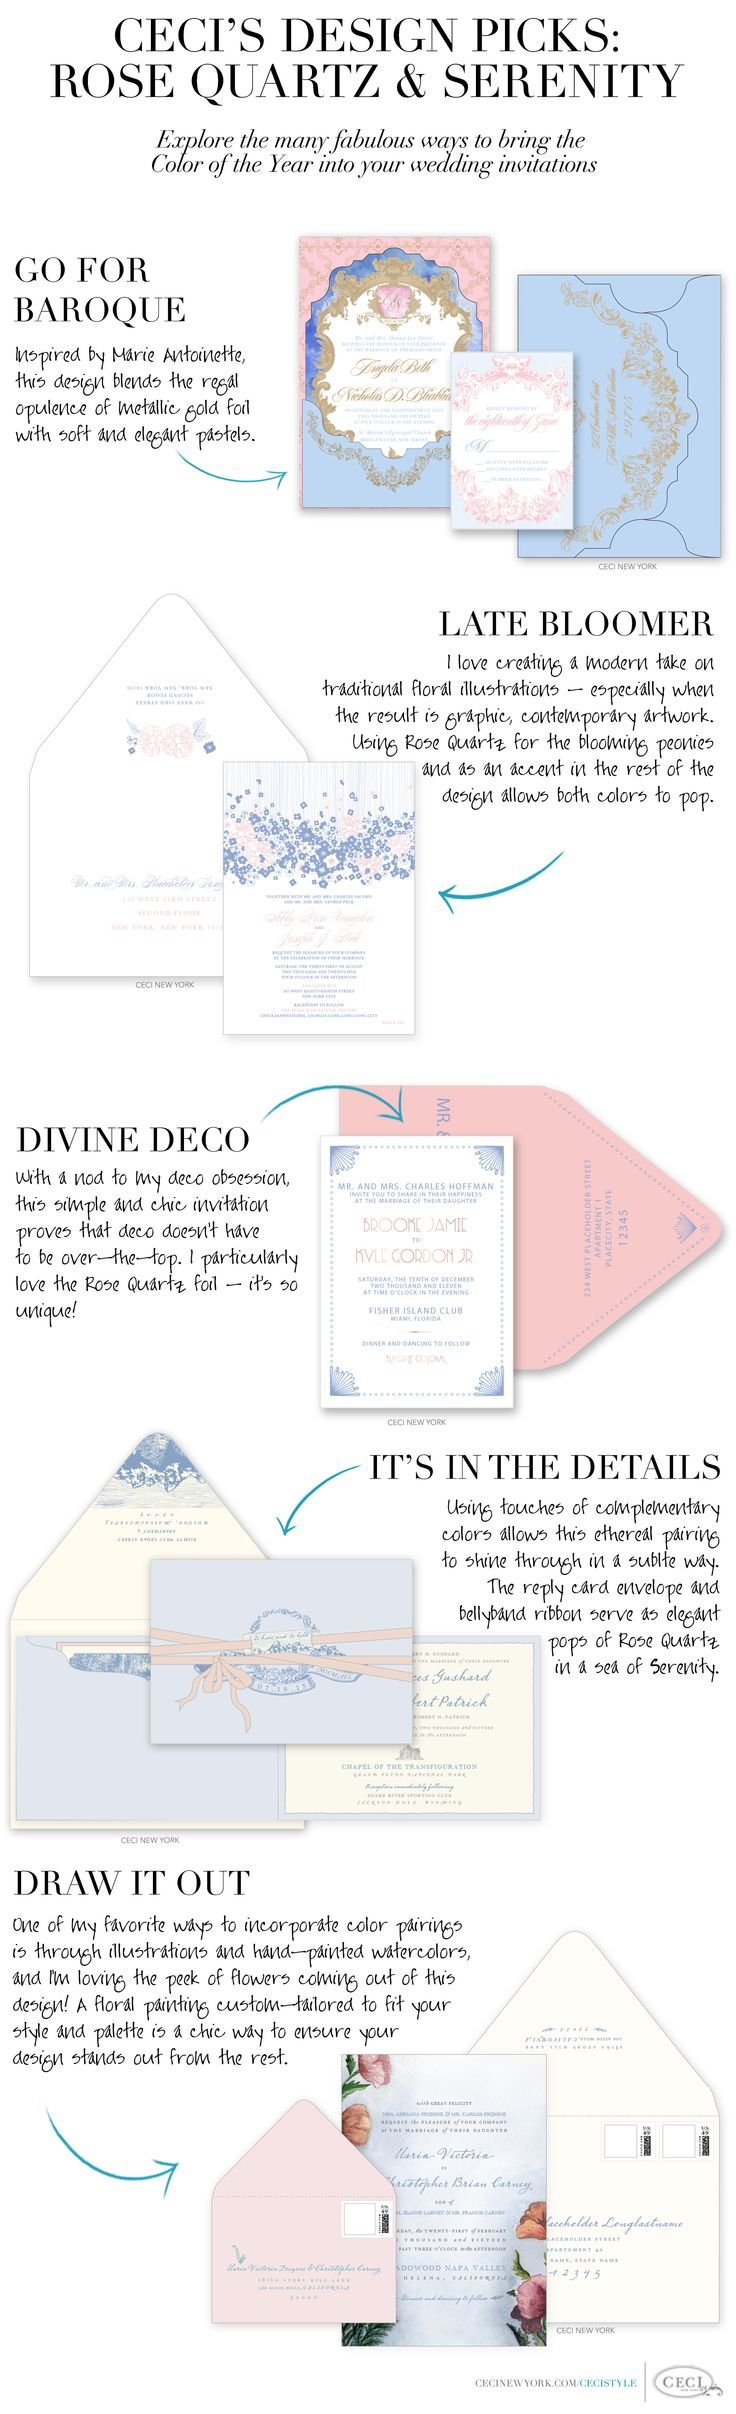 Explore the fabulous ways to bring the Color of the Year 2016 into your wedding invitations